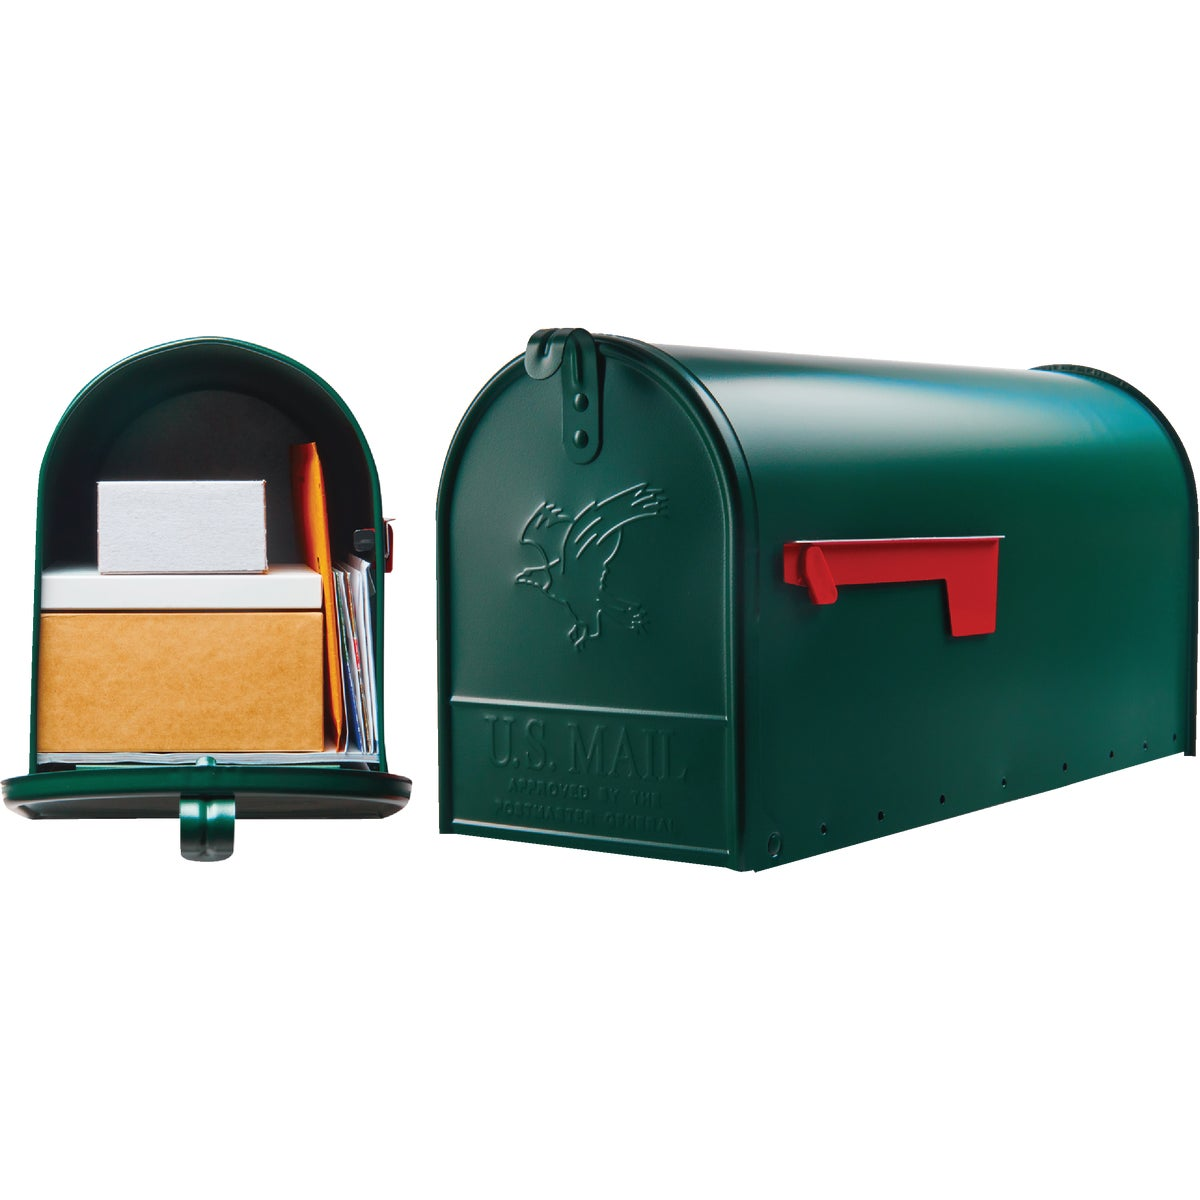 GREEN T2 MAILBOX - E16G#T2 by Solar Group